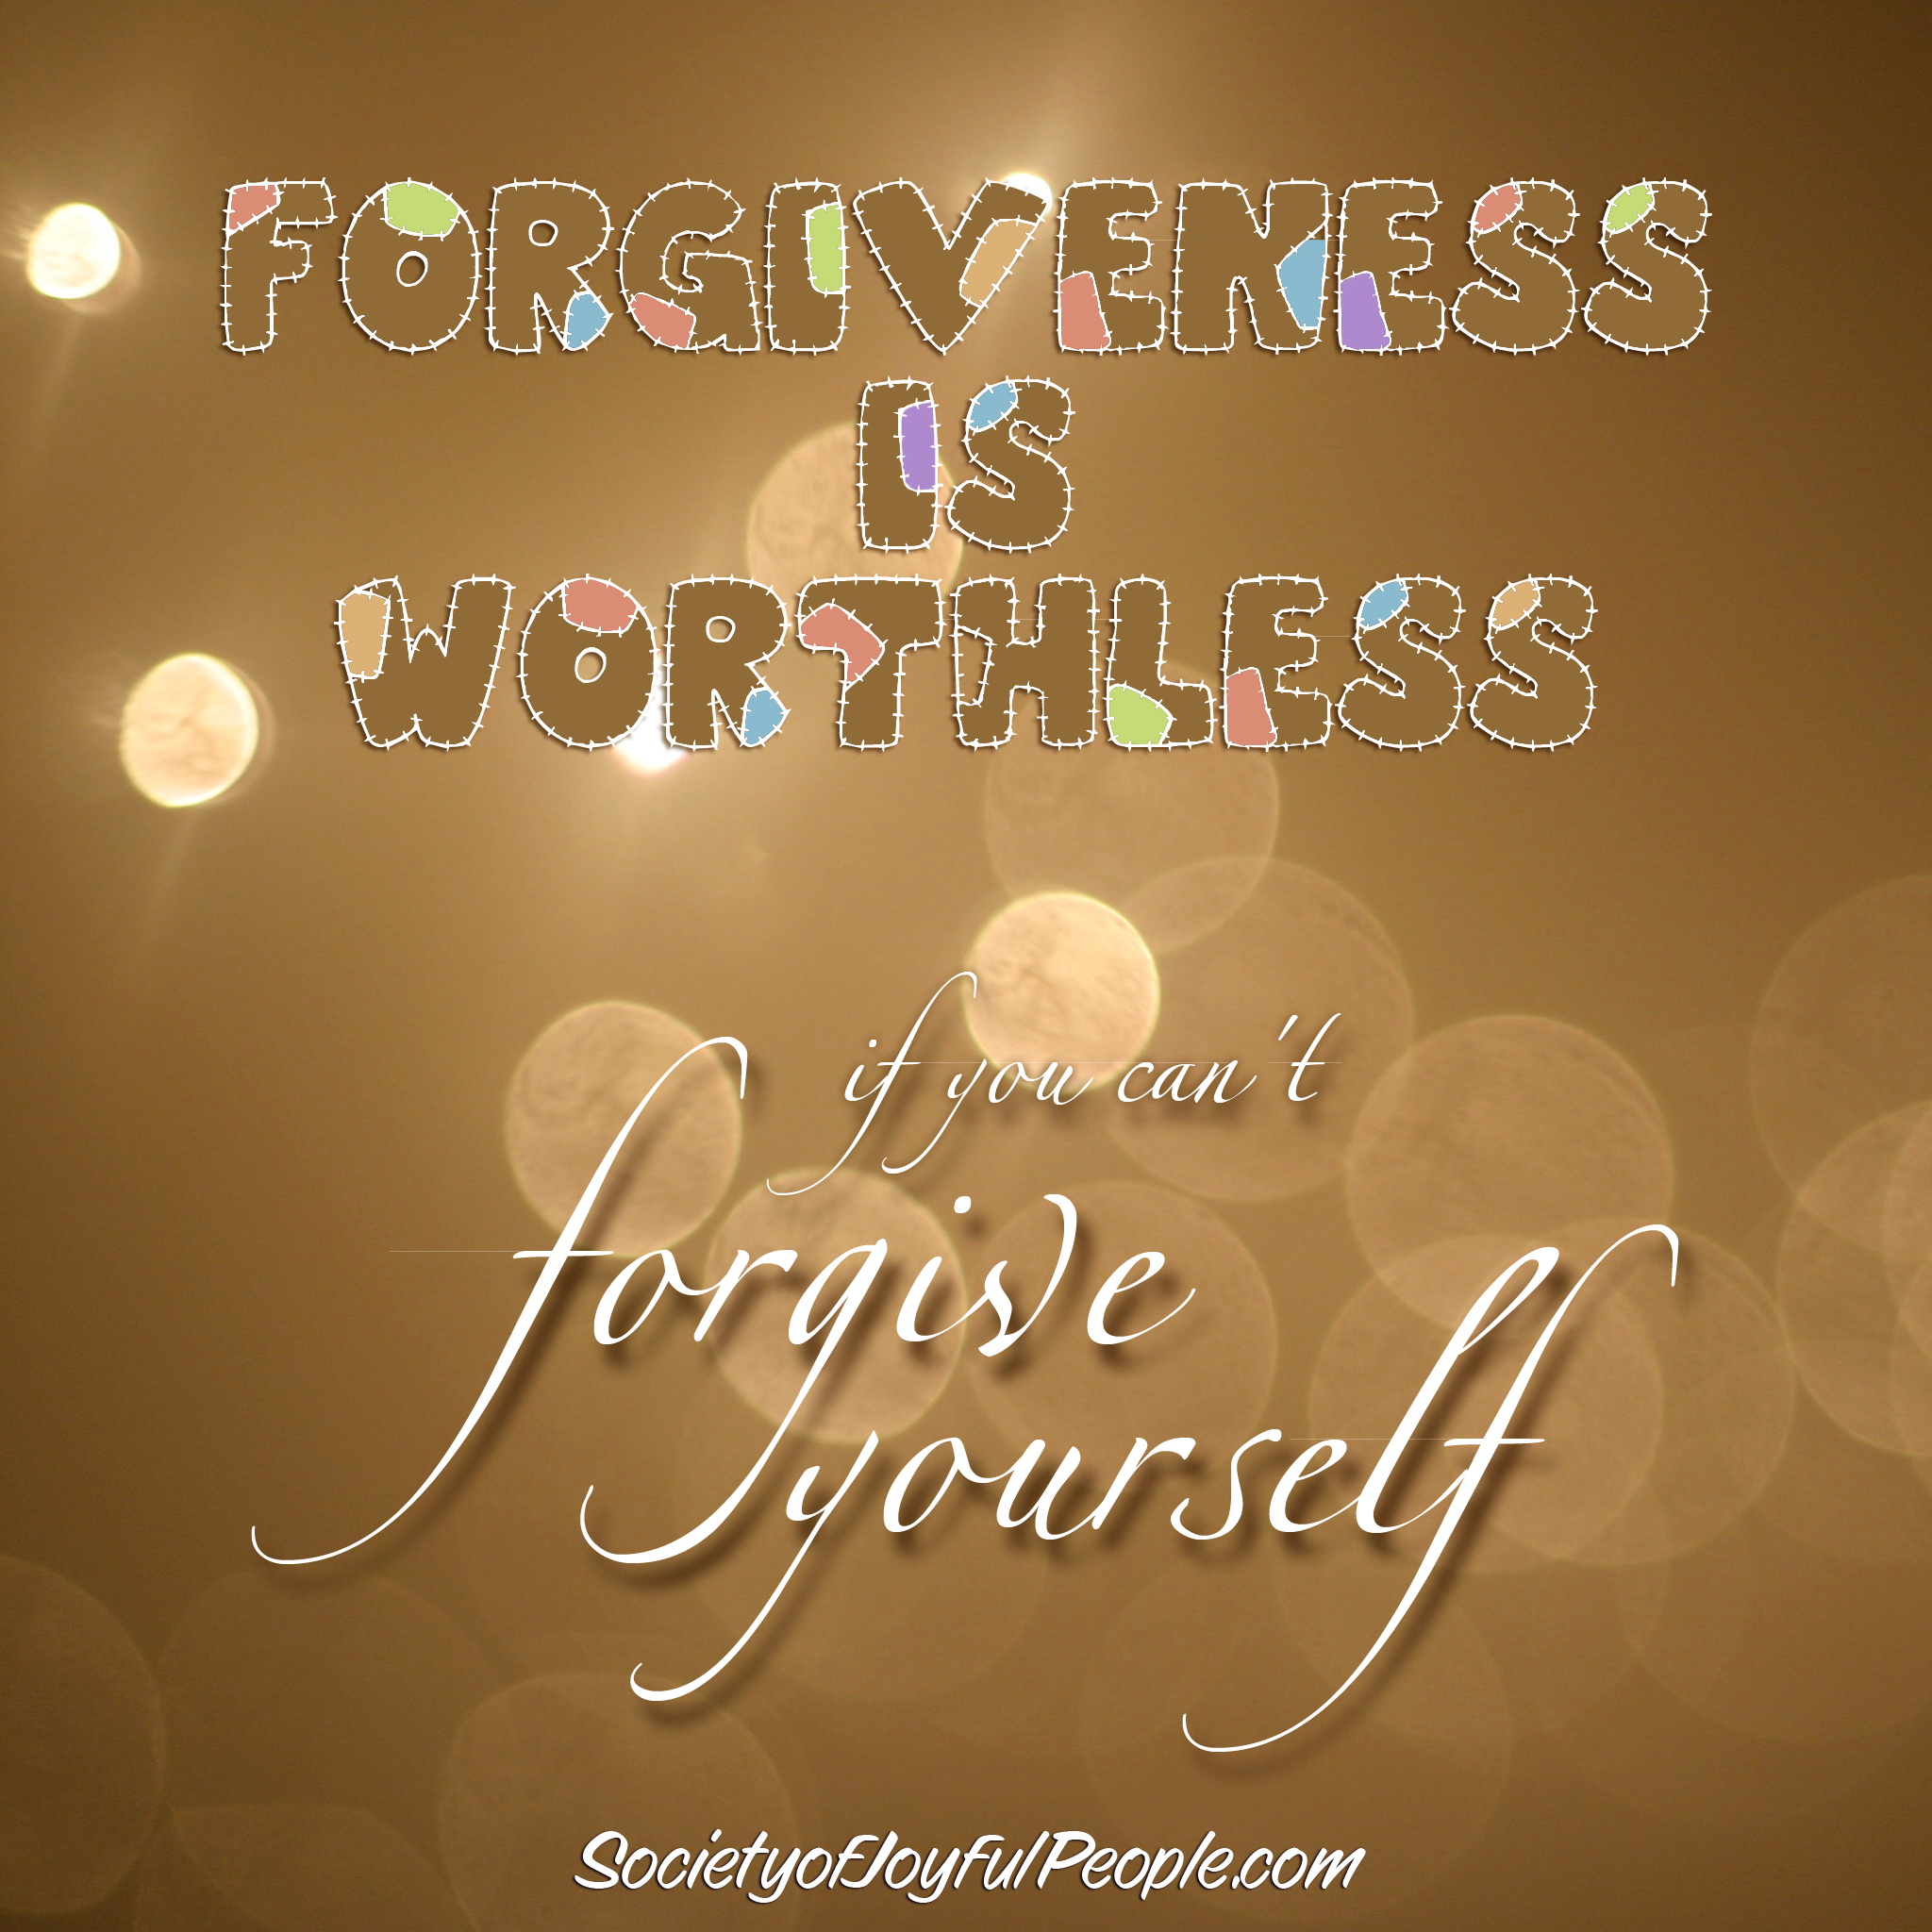 Forgive Yourself Quotes. QuotesGram